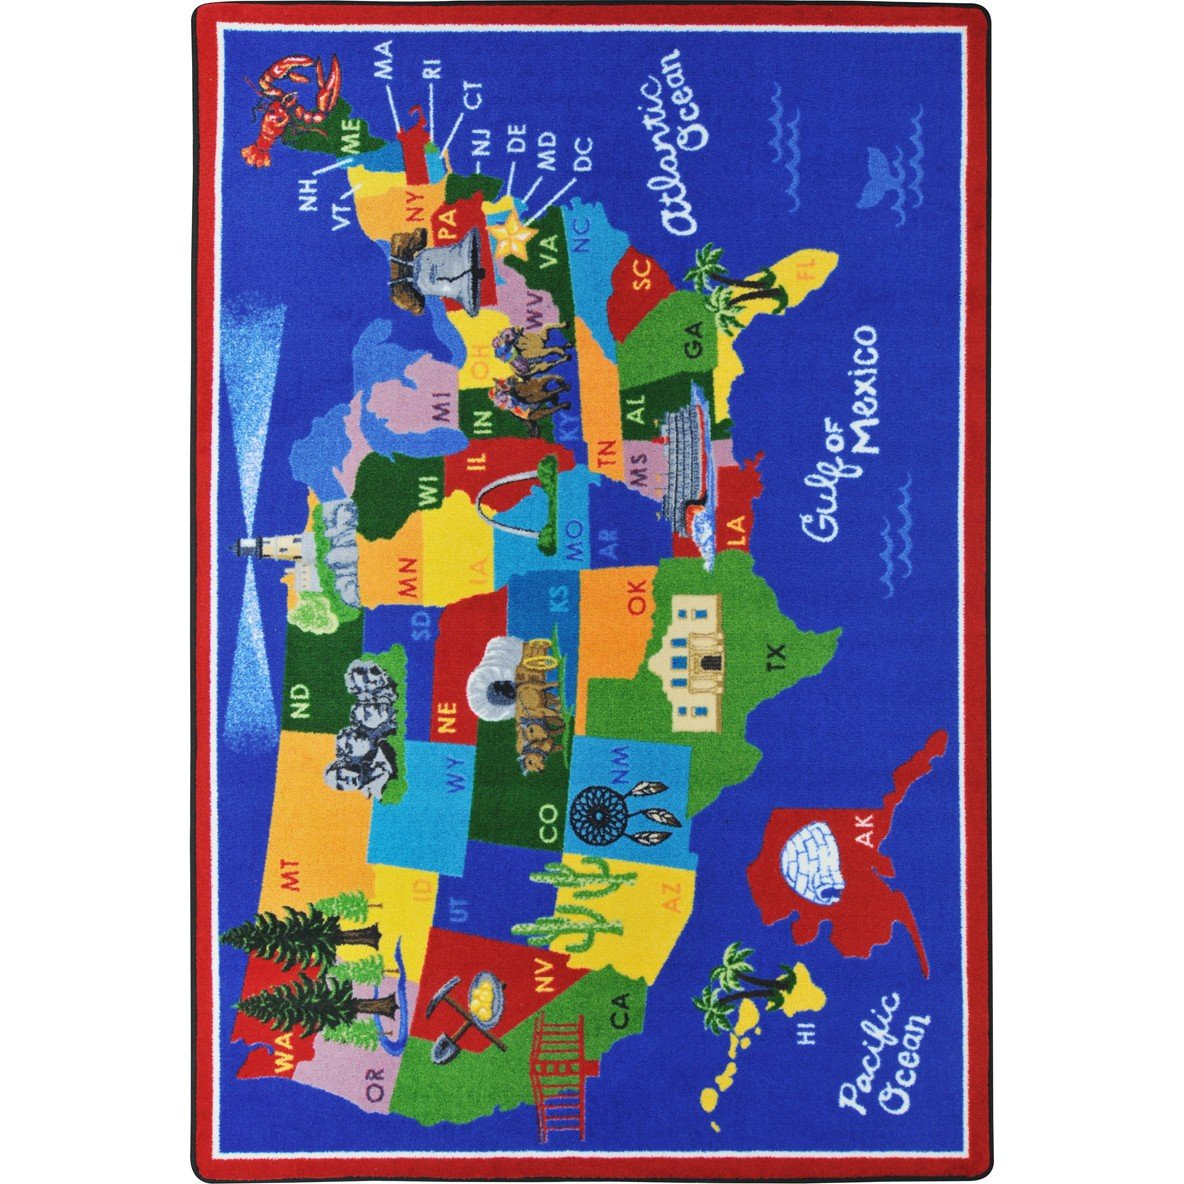 Joy Carpets Kid Essentials Geography & Environment America The Beautiful Rug, Multicolored, 5'4'' x 7'8'' by Joy Carpets